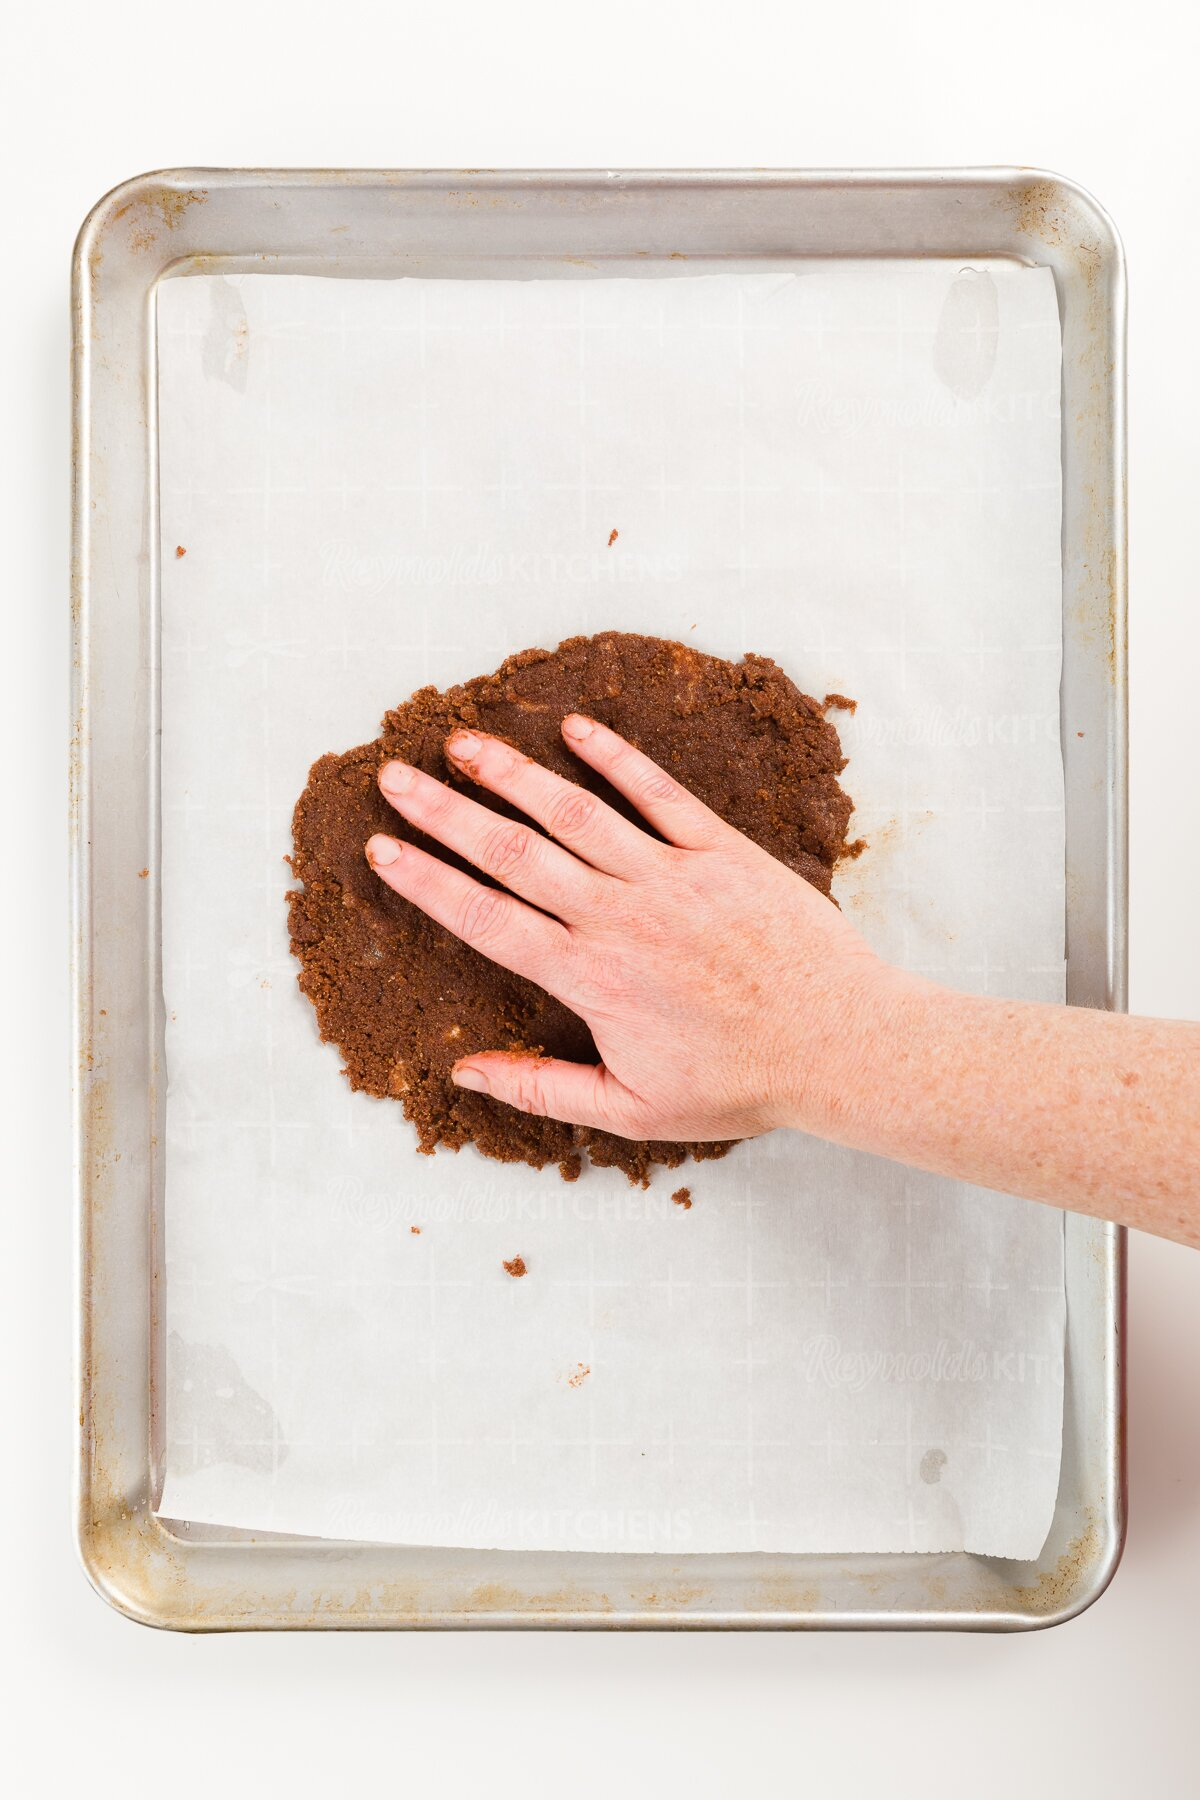 Pressing brown sandy mixture onto parchment paper on a cookie sheet